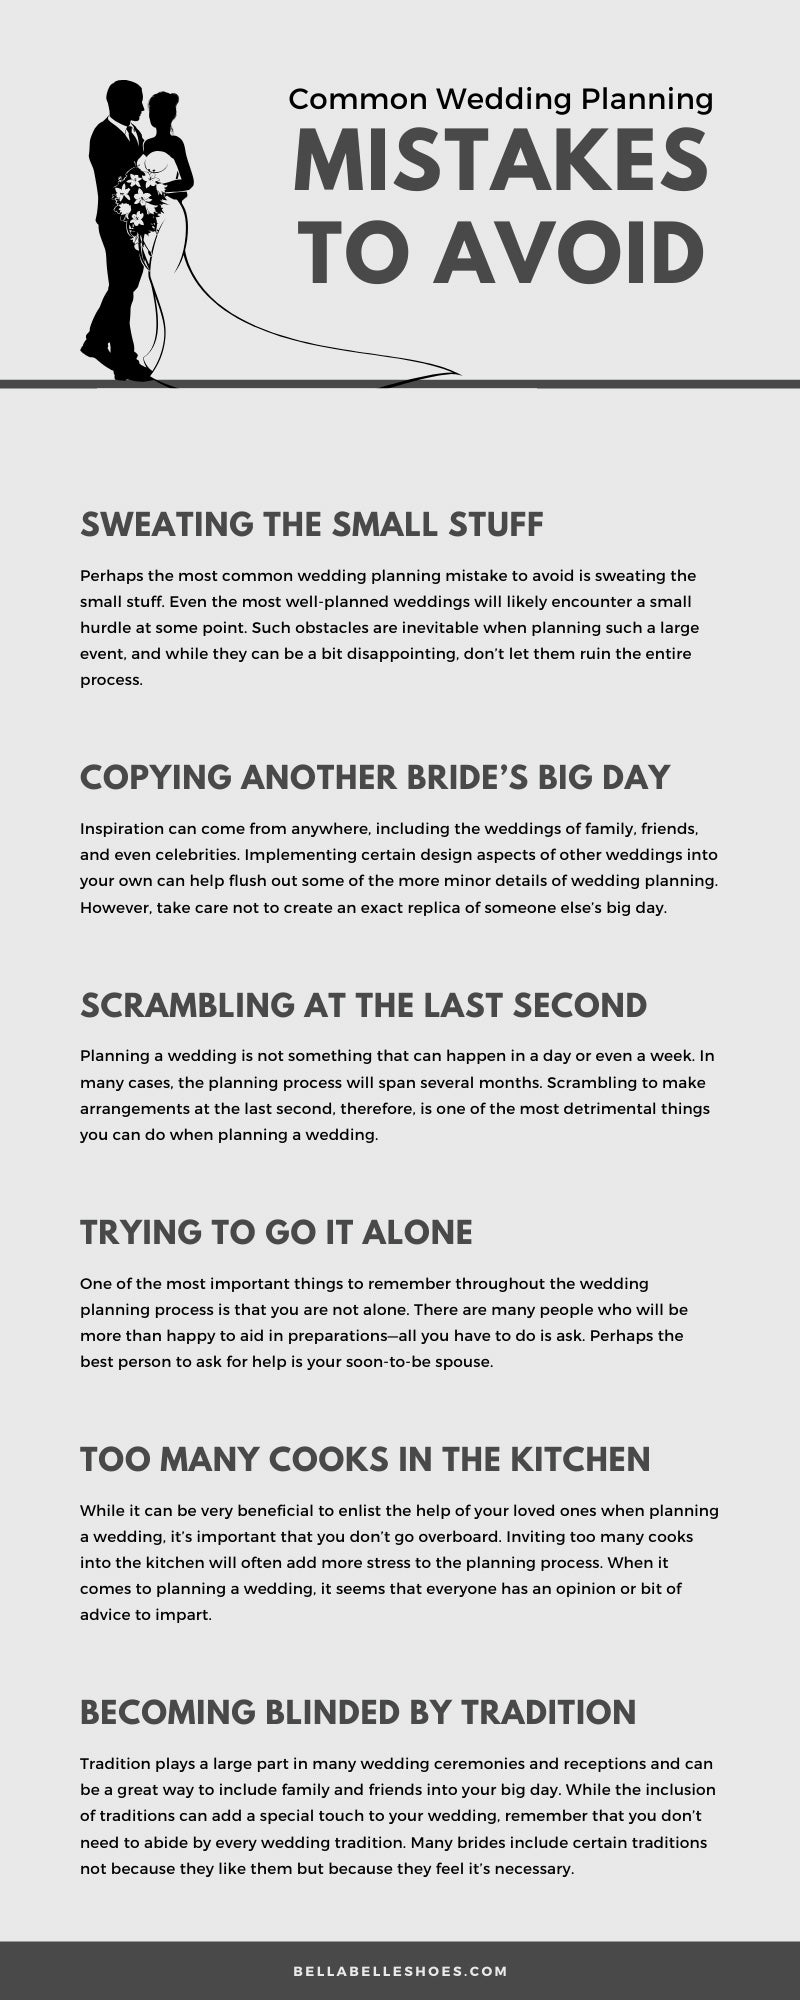 Wedding Planning Mistakes to Avoid